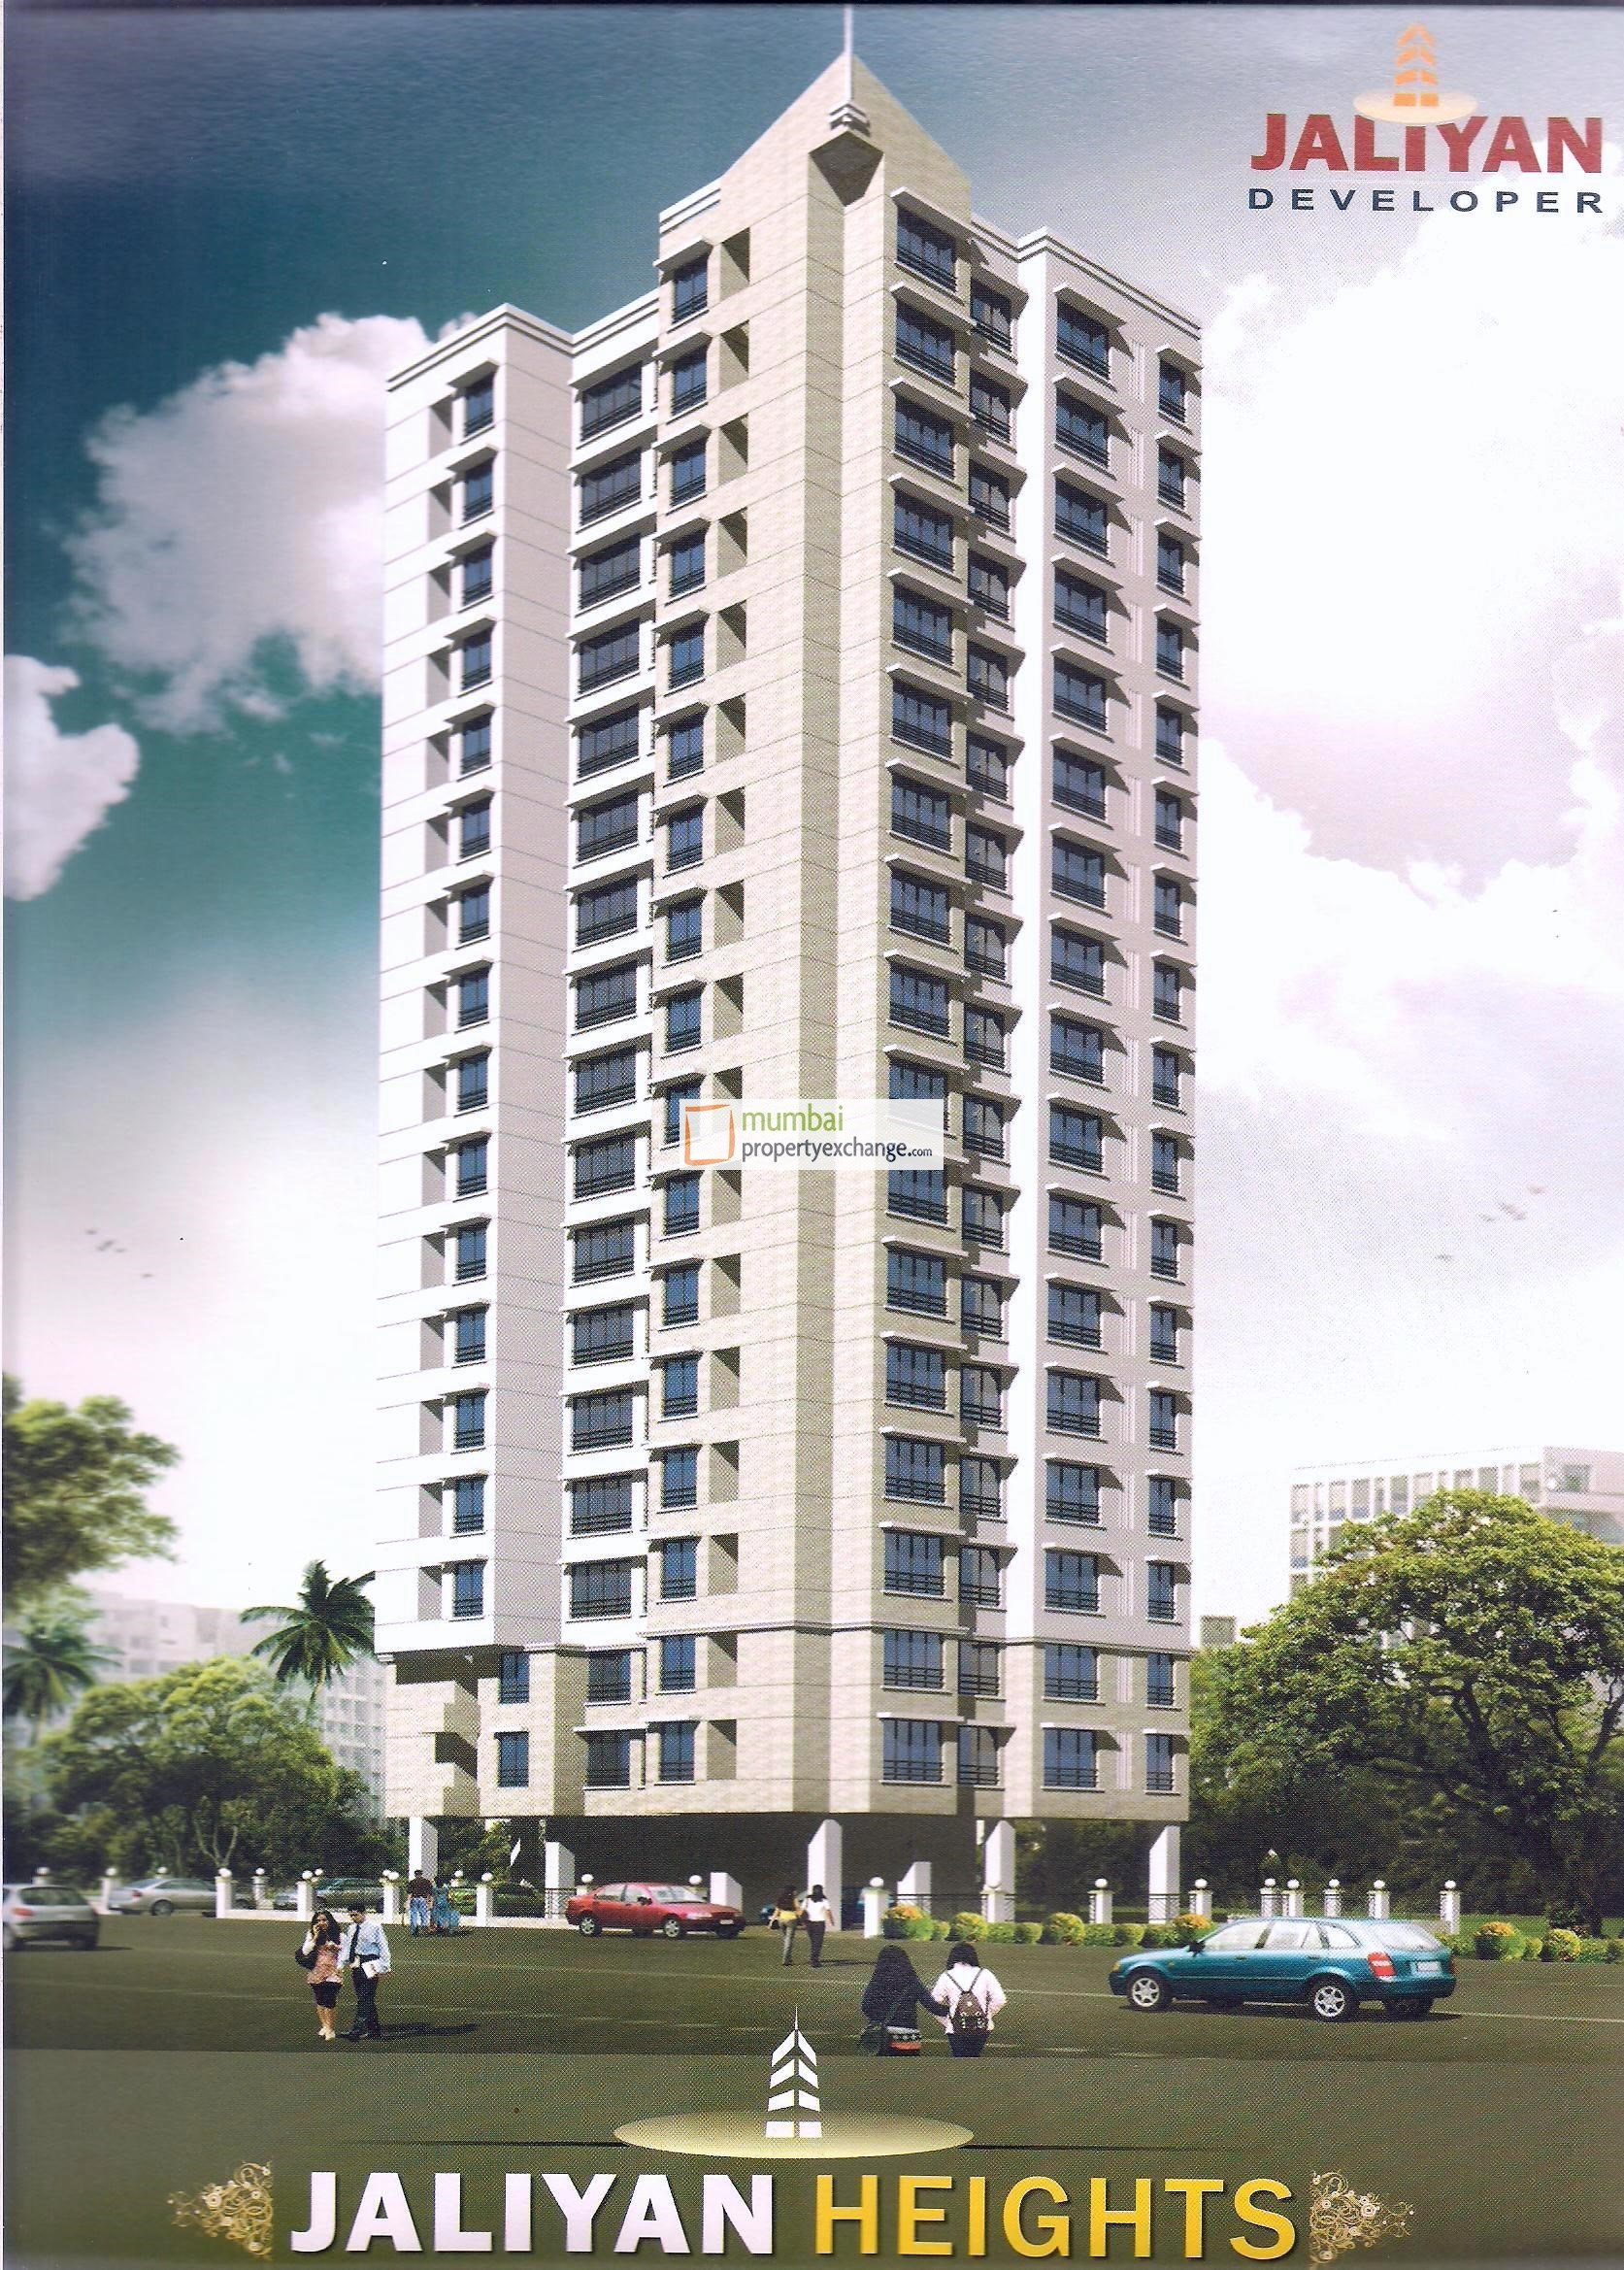 Jaliyan Height, Borivali East